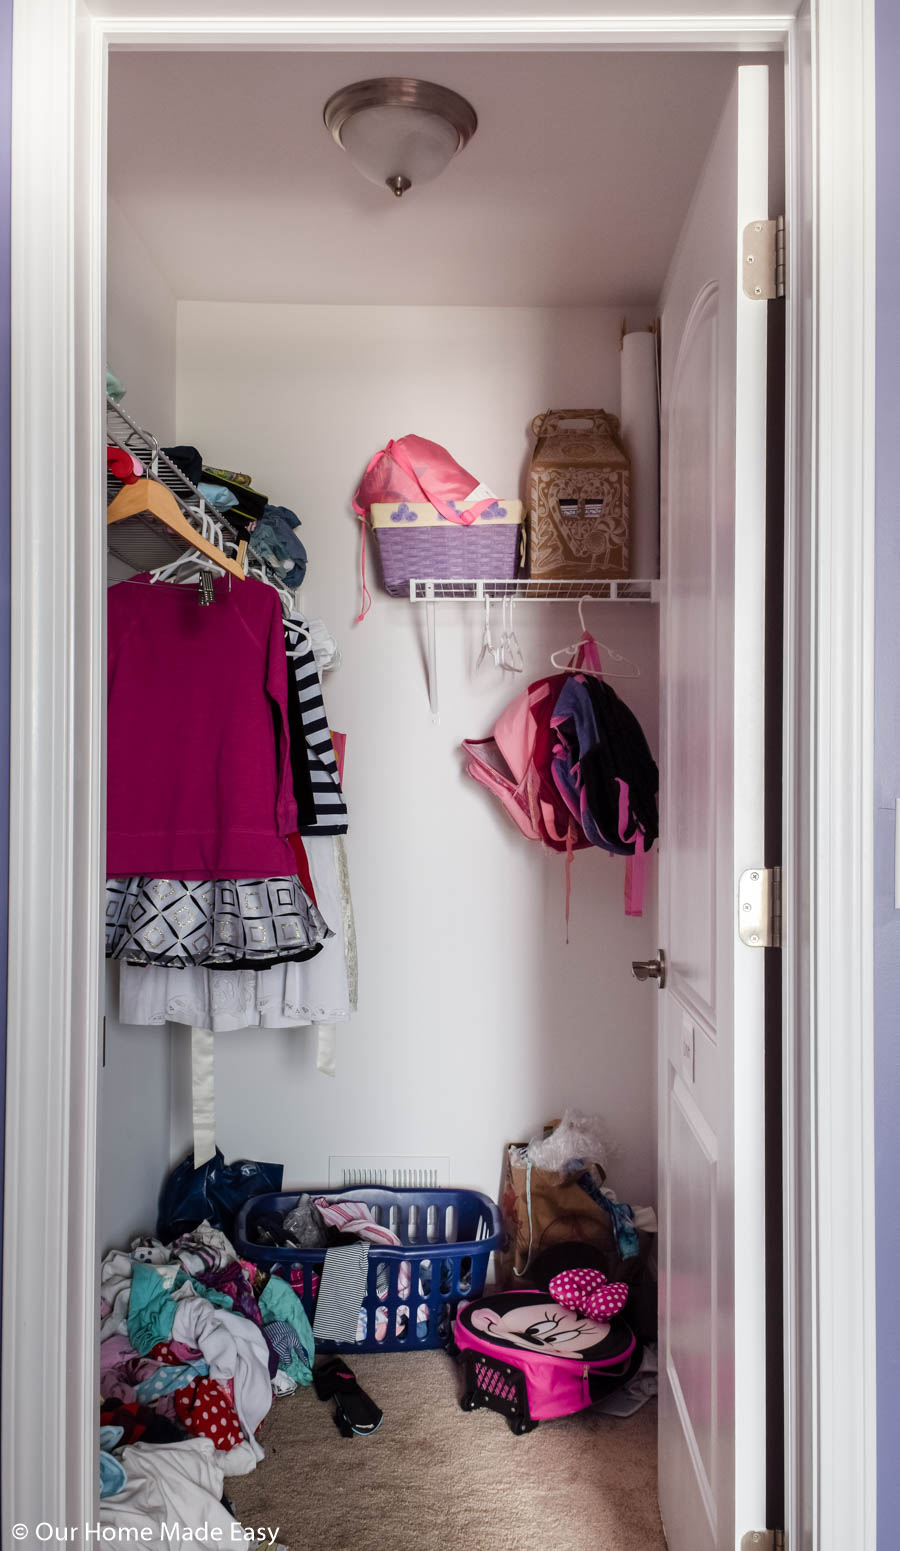 Before our bedroom closet organization project, this small closet needed some serious help!